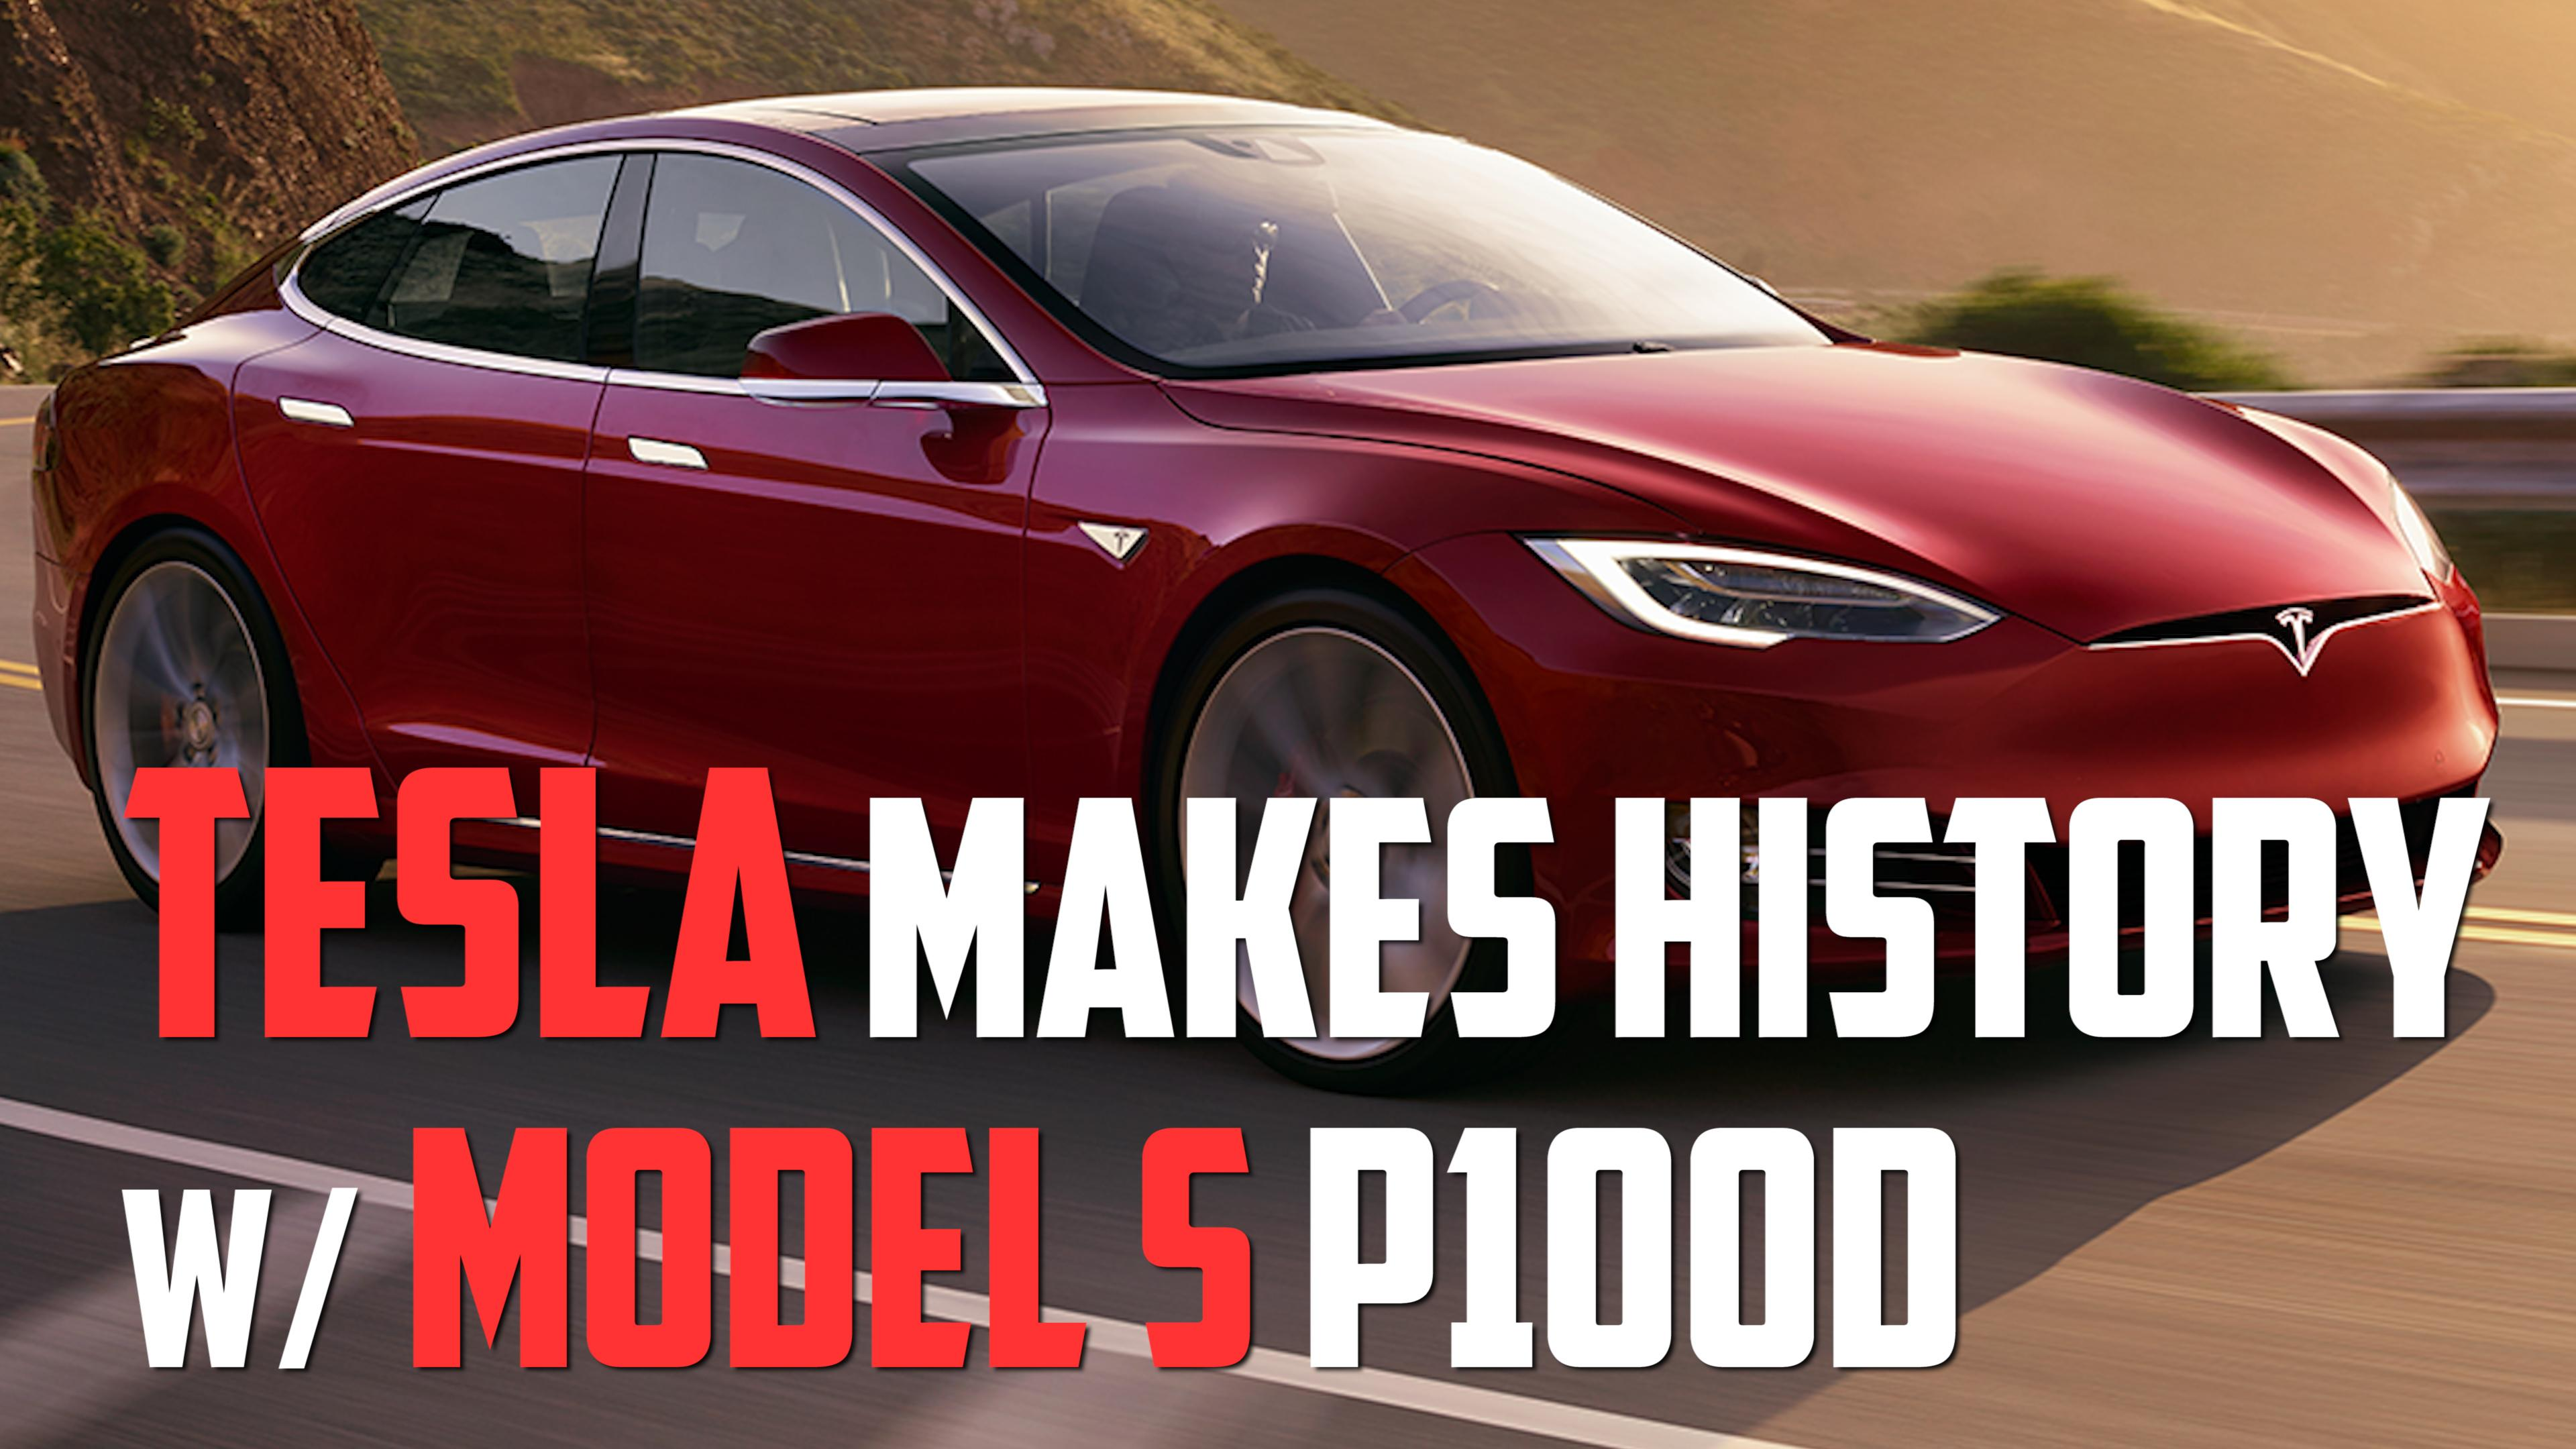 Tesla Model S 100d Goes 335 Miles Per Charge Autoblog